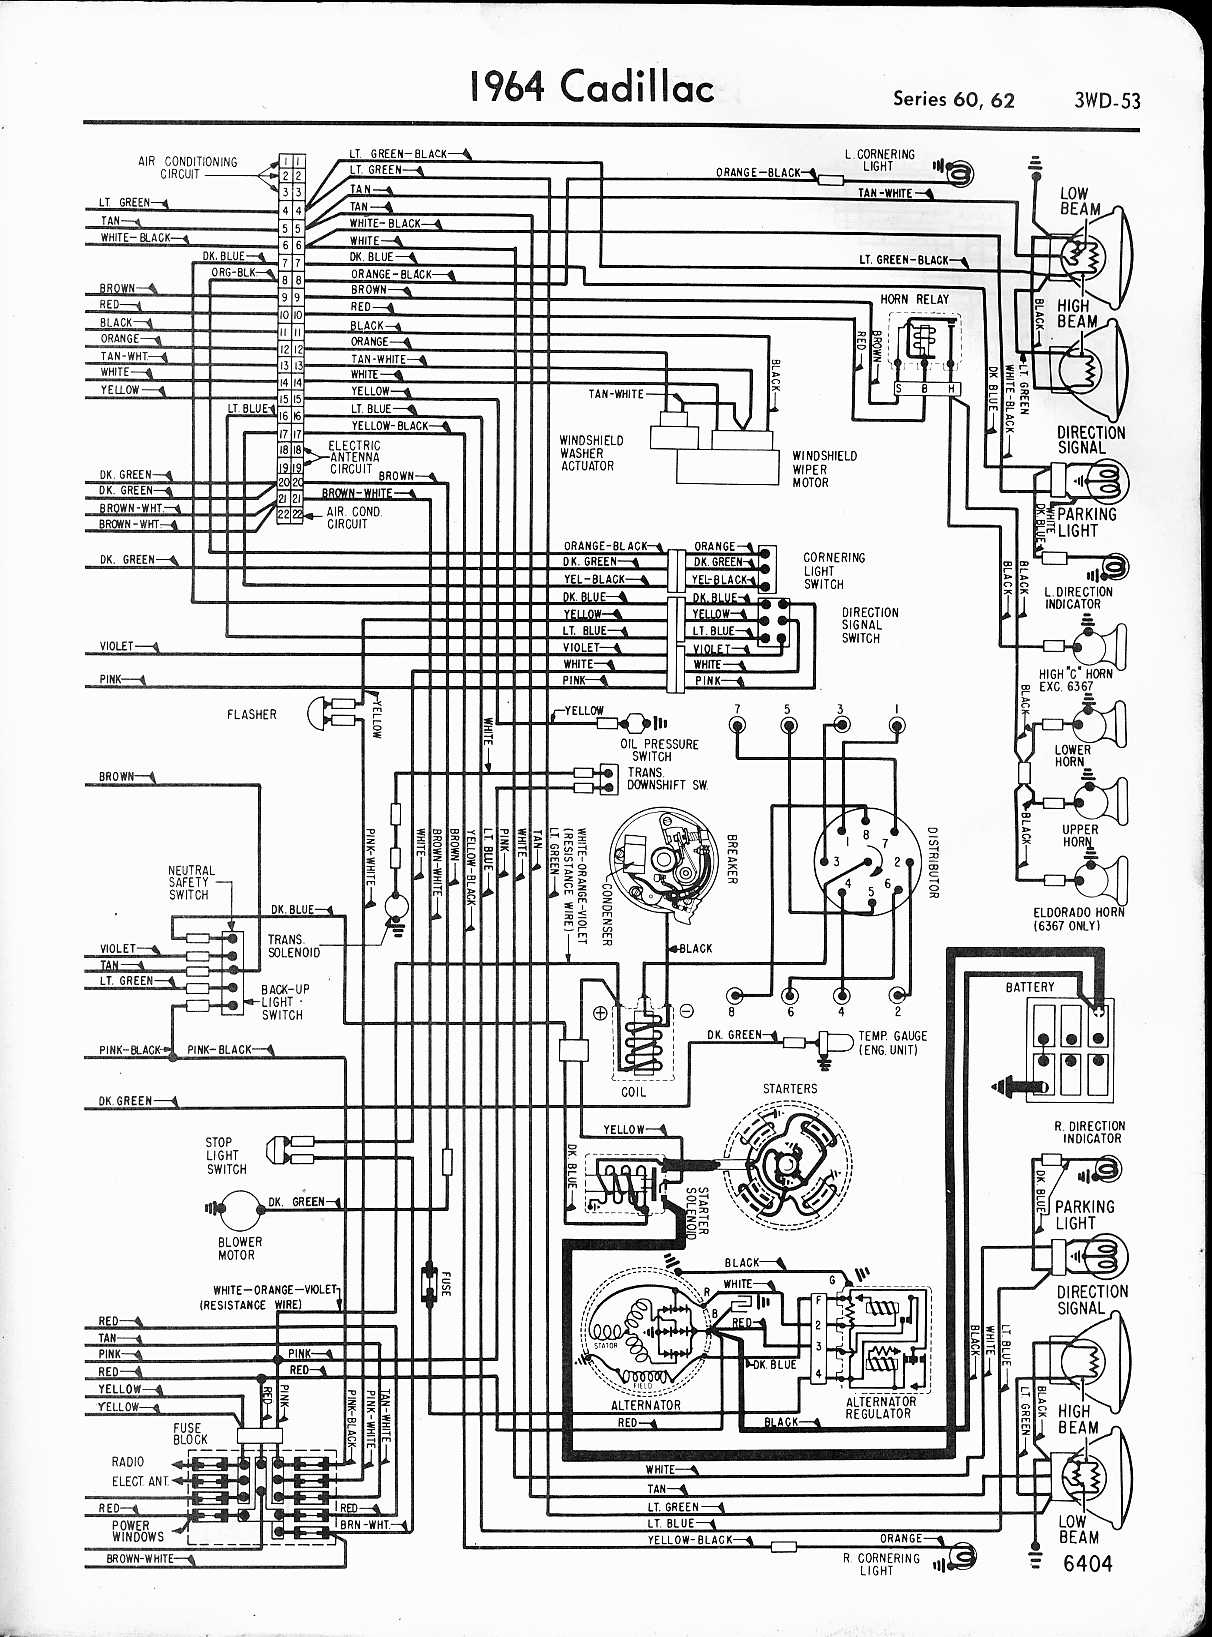 1964 Cadillac Ac Wiring Diagram Reveolution Of Air Conditioning Nova Brougham Get Free Image About Steering Column